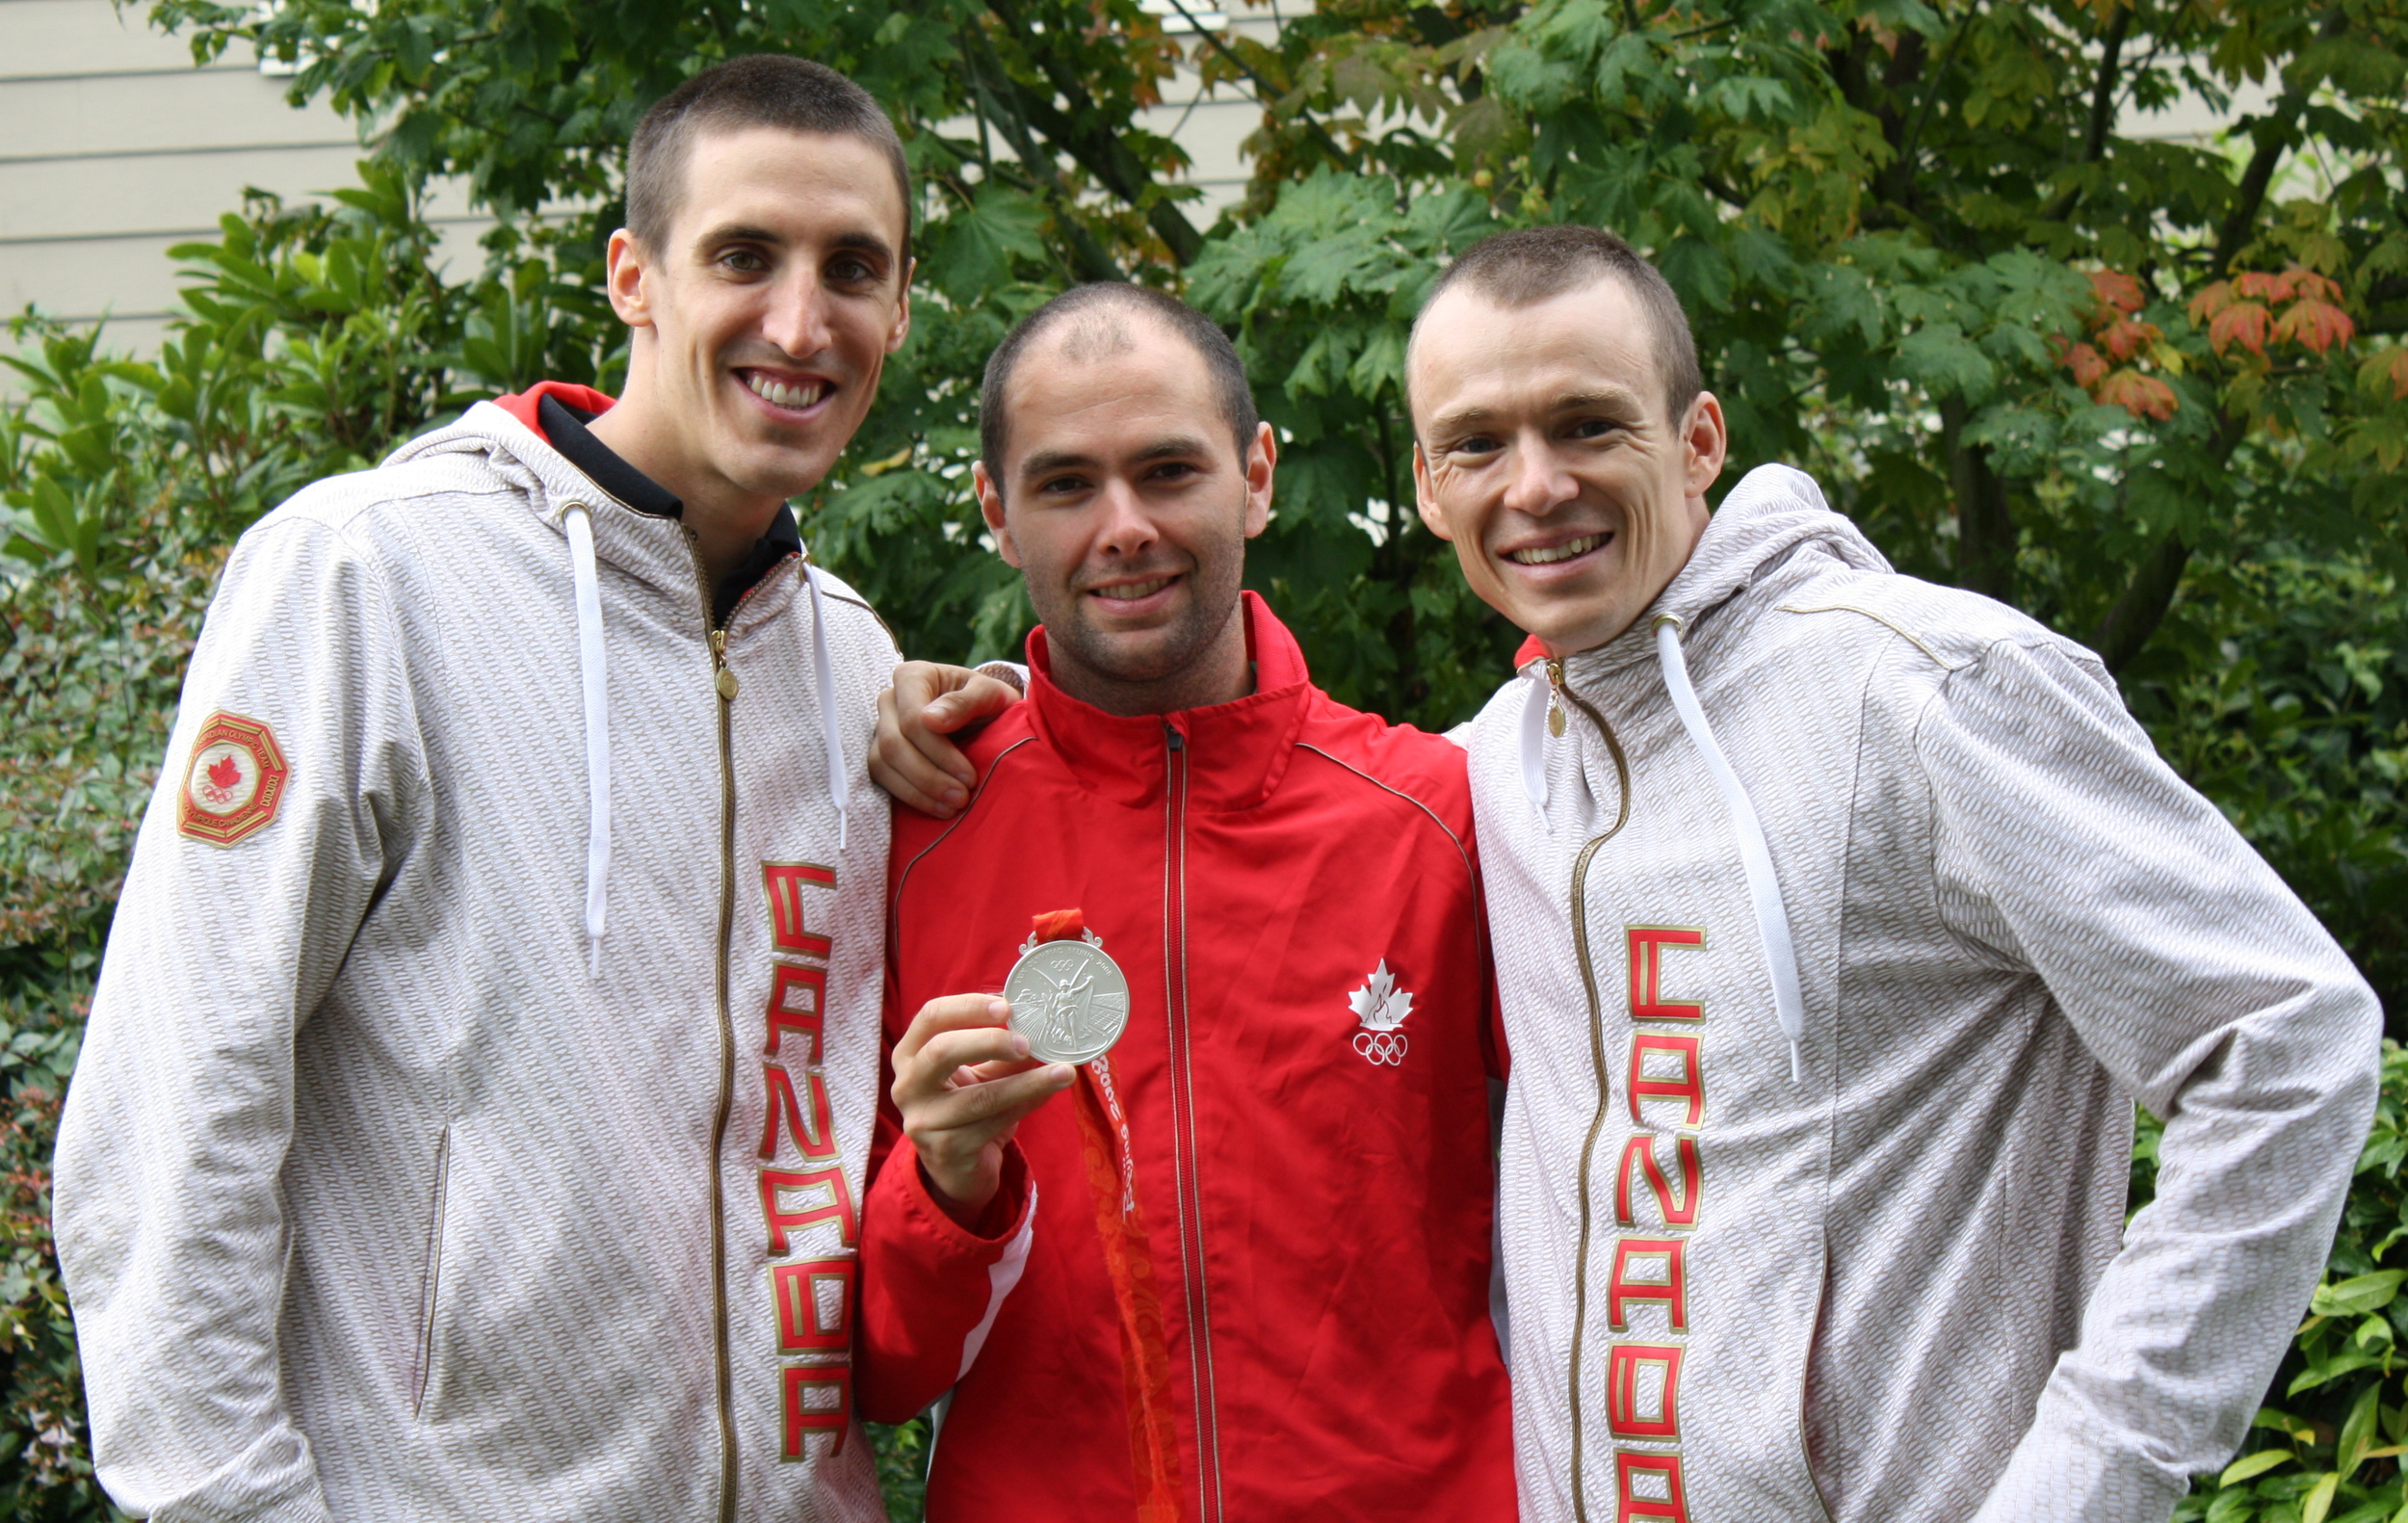 Colin Jenkins, Joel Filliol, and Simon Whitfield